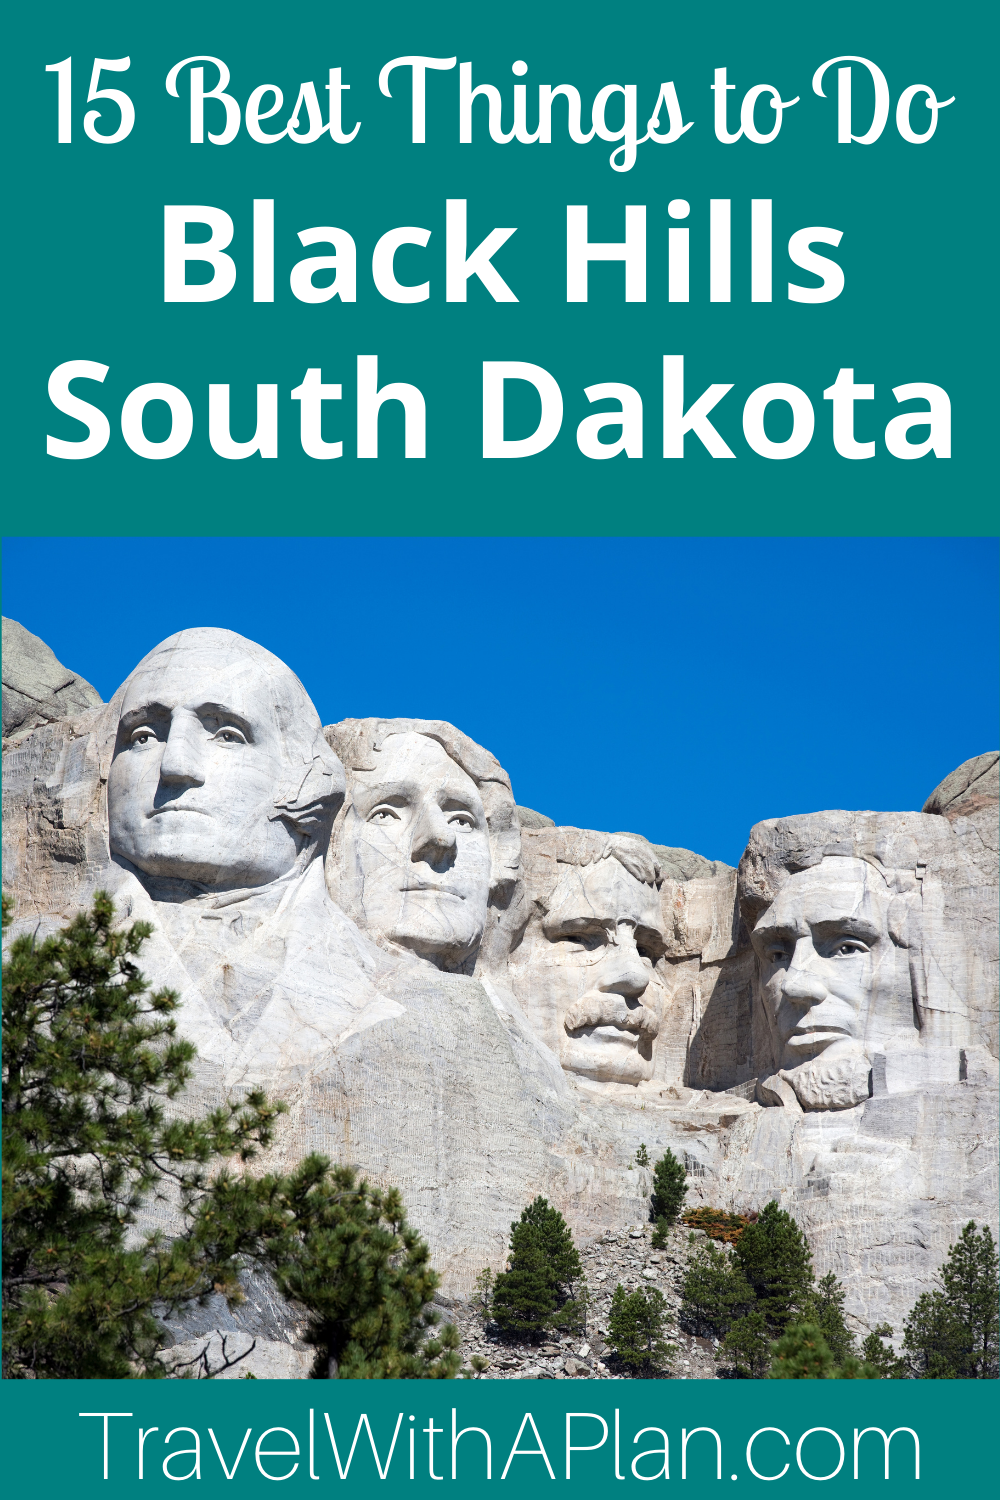 Click here for a list of the best things to do in the Black Hills with kids from Top US Family Travel Blog, Travel With A Plan!  #SouthDakota #BlackHills #familytravel